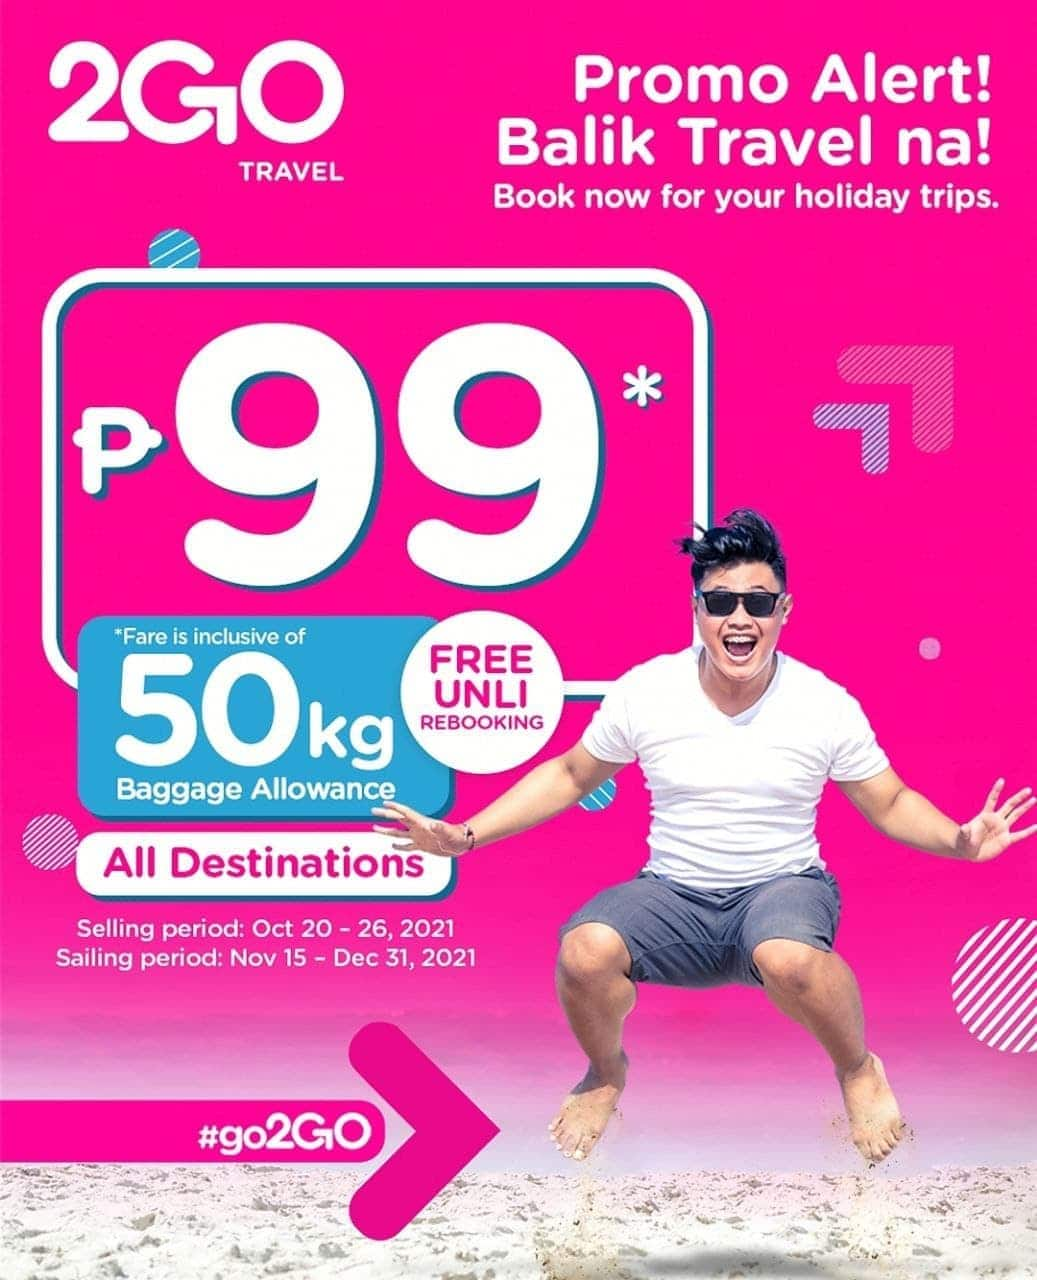 2GO Travel P99 Promo - 2GO Travel Destinations Now Accept Vaccination Cards In Lieu of Swab Tests